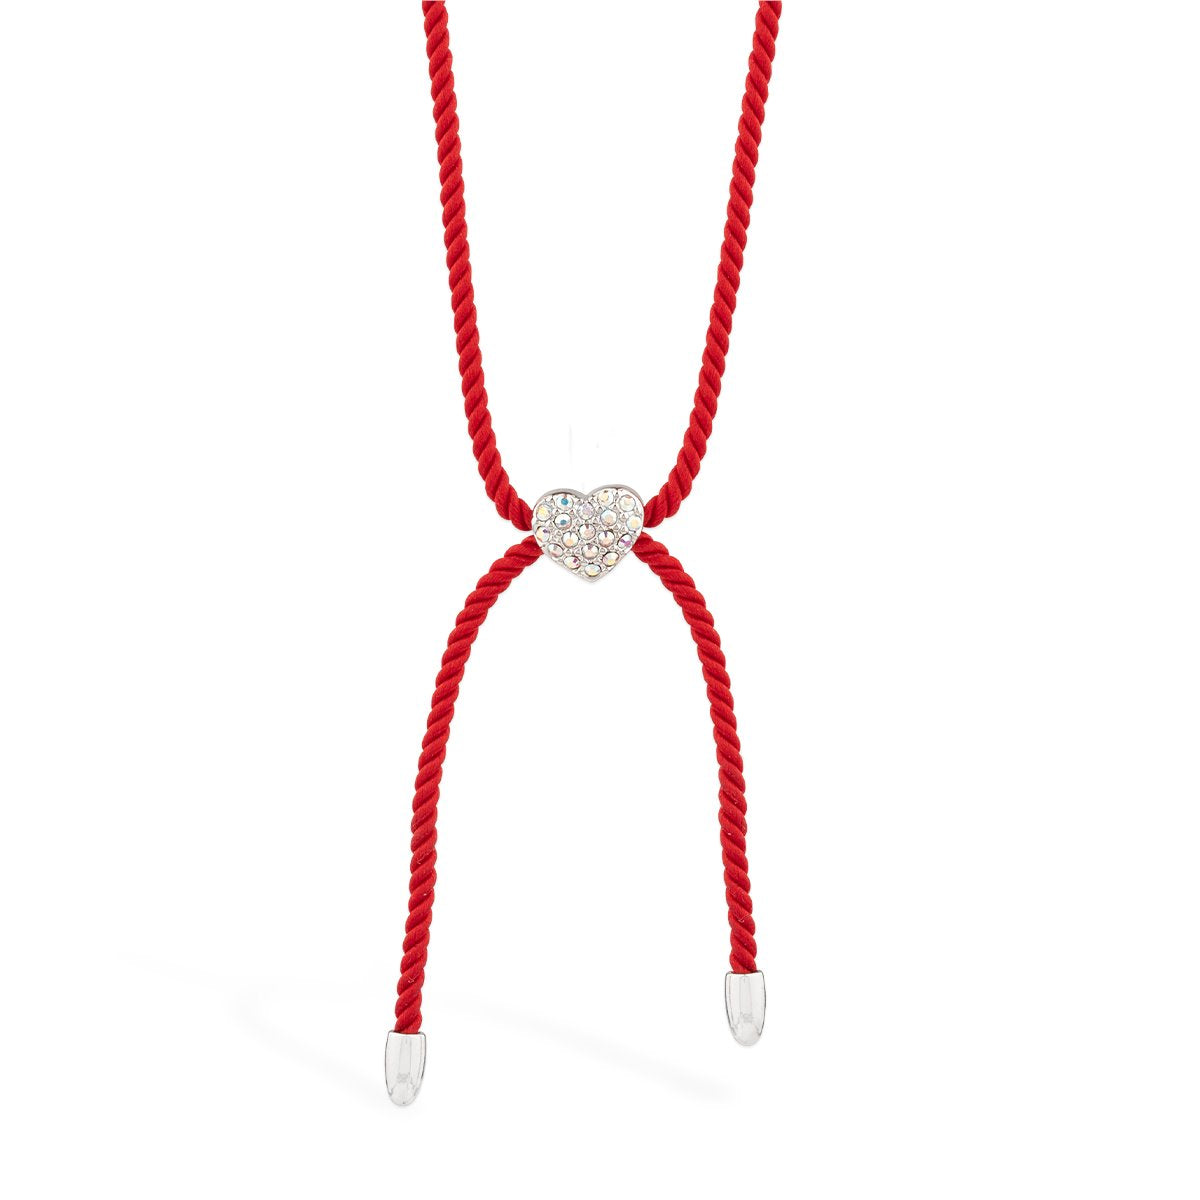 Wear Red Heart Necklace